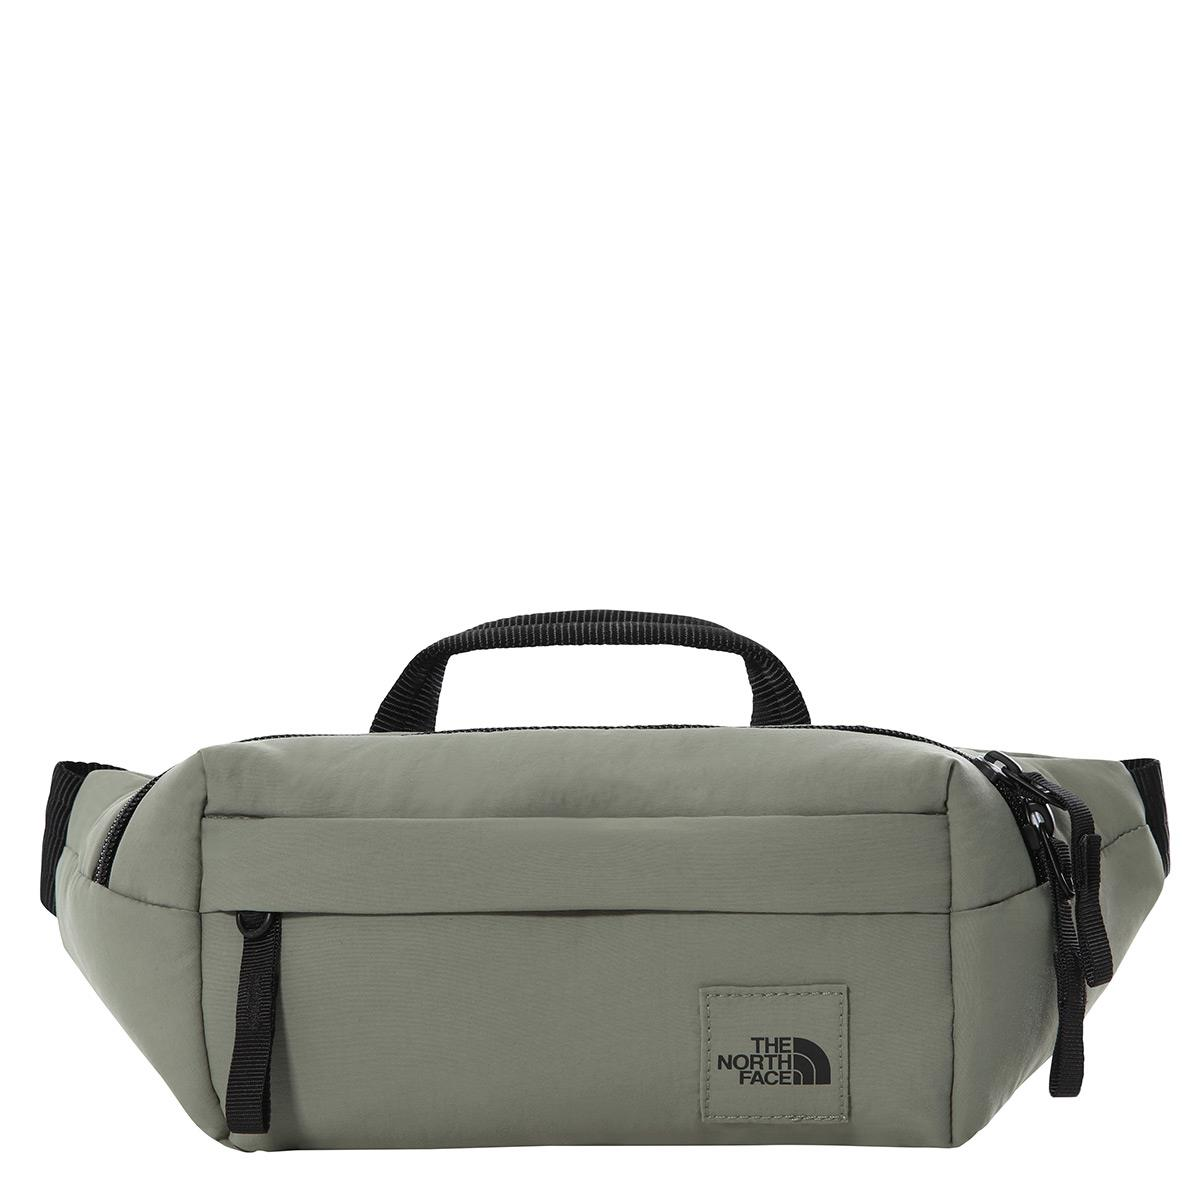 The North Face  CITY VOYAGER LUMBAR PACK Çanta Unisex